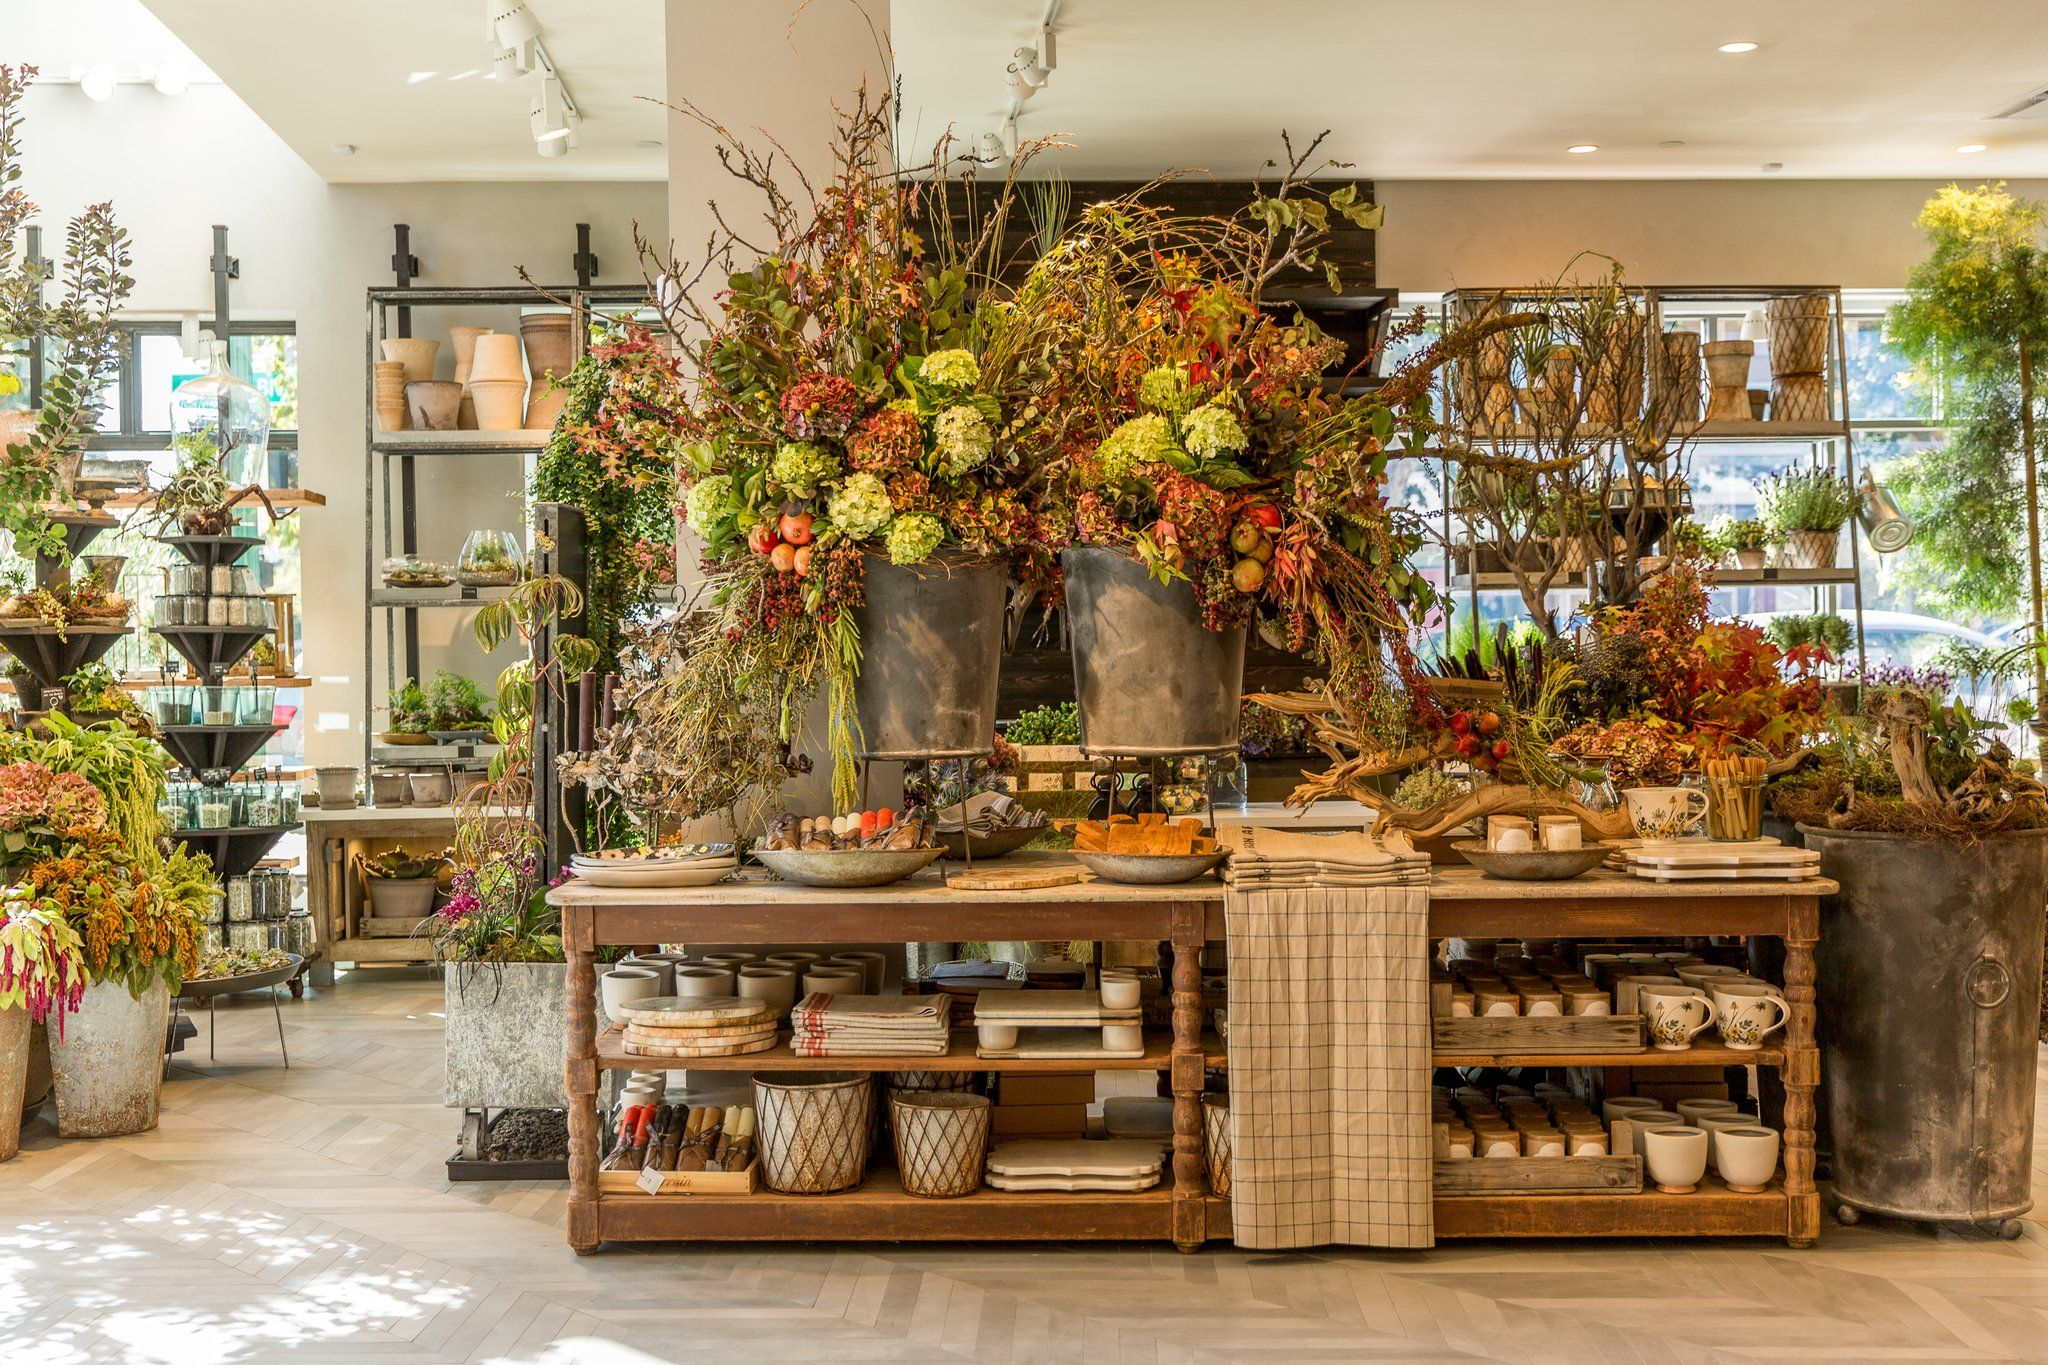 Anthropologie S New Concept Store Is Exactly What You Ve Been Waiting For Home And Garden Store Fall Store Displays Store Decor